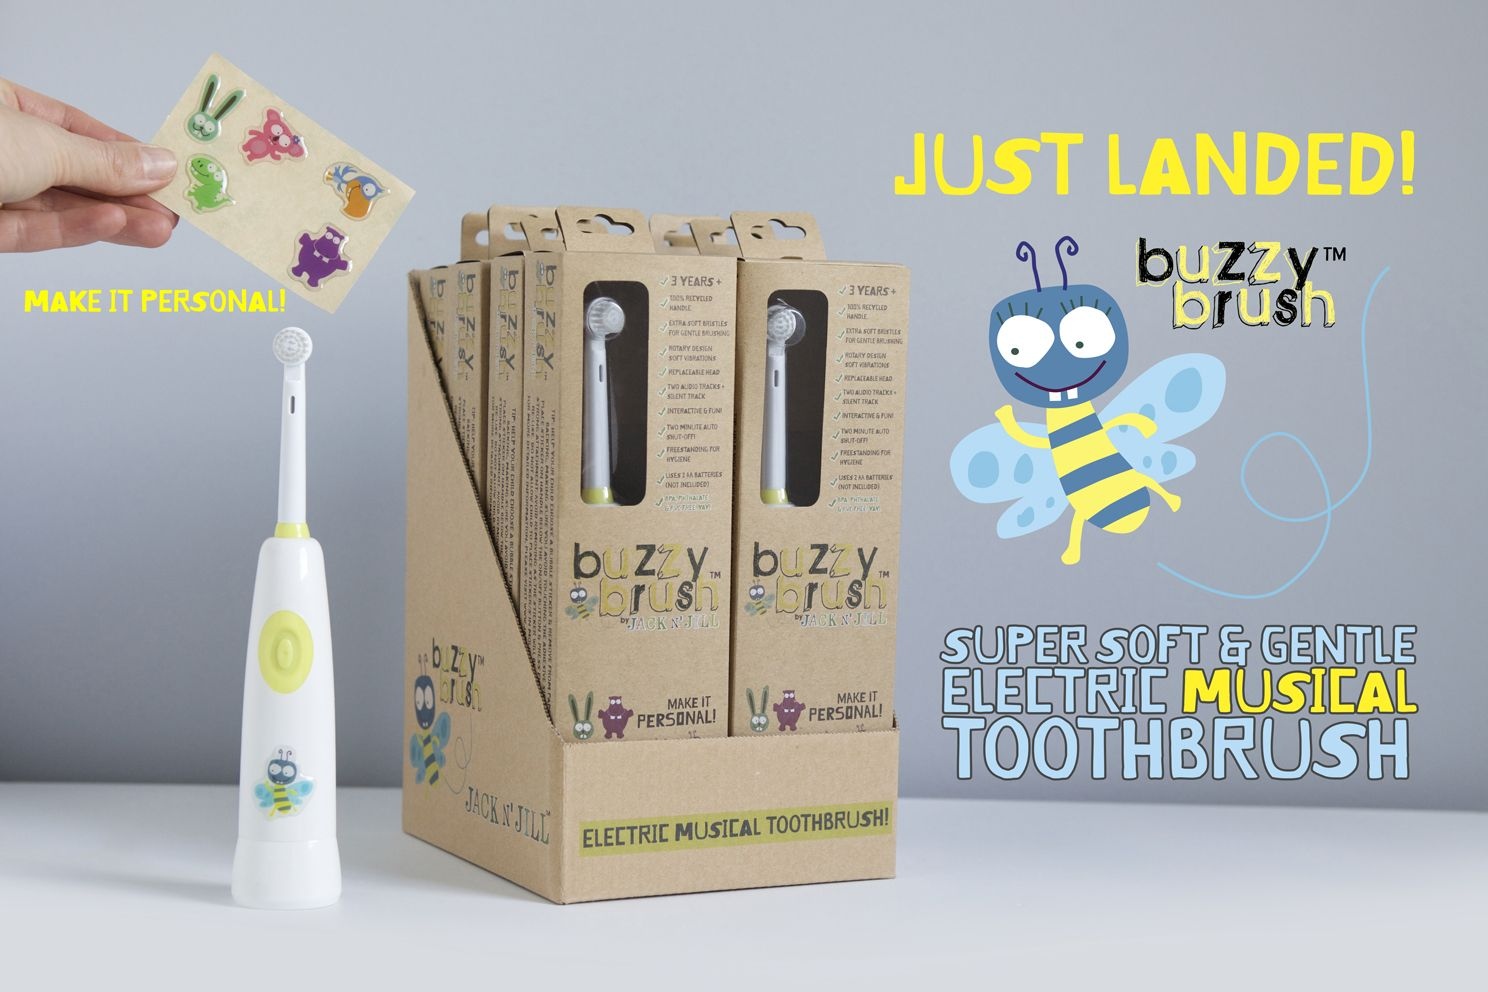 Jack N Jill Natural Calendula Toothpaste Blackcurrant Flavour 50g Strawberry Sls Free No Artificial Preservatives Gluten Safety Seal Easy Open Flip Top Cap Bpa Minimal Recyclable Packaging Made In Australia